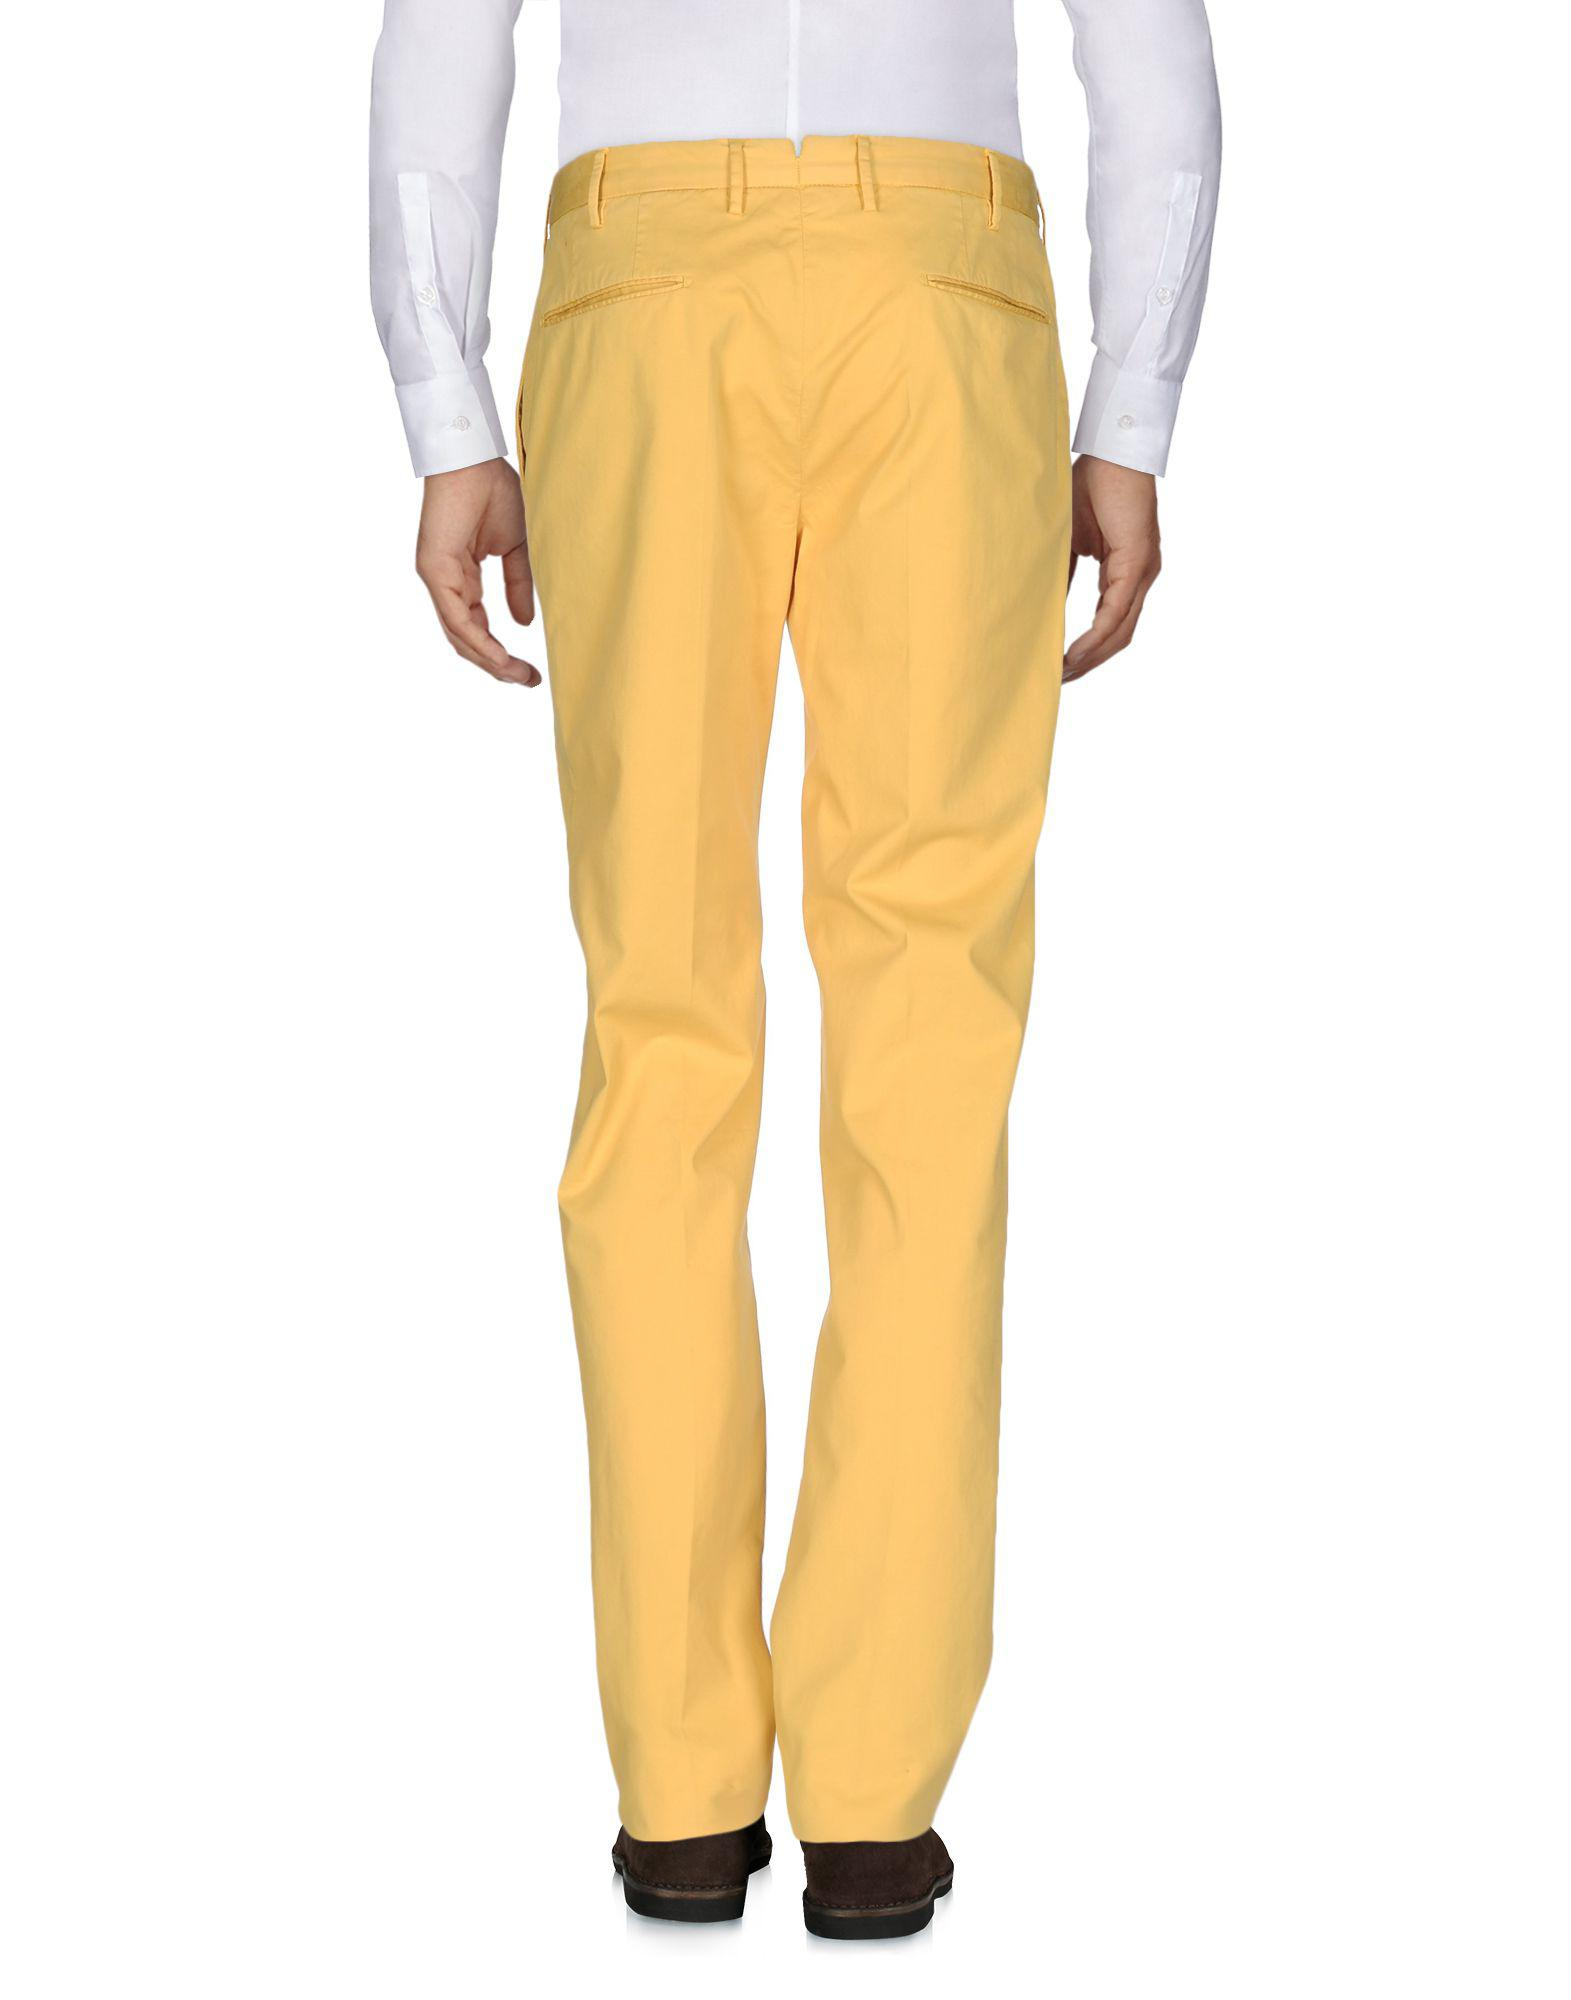 Incotex Cotton Casual Pants in Yellow (Black) for Men